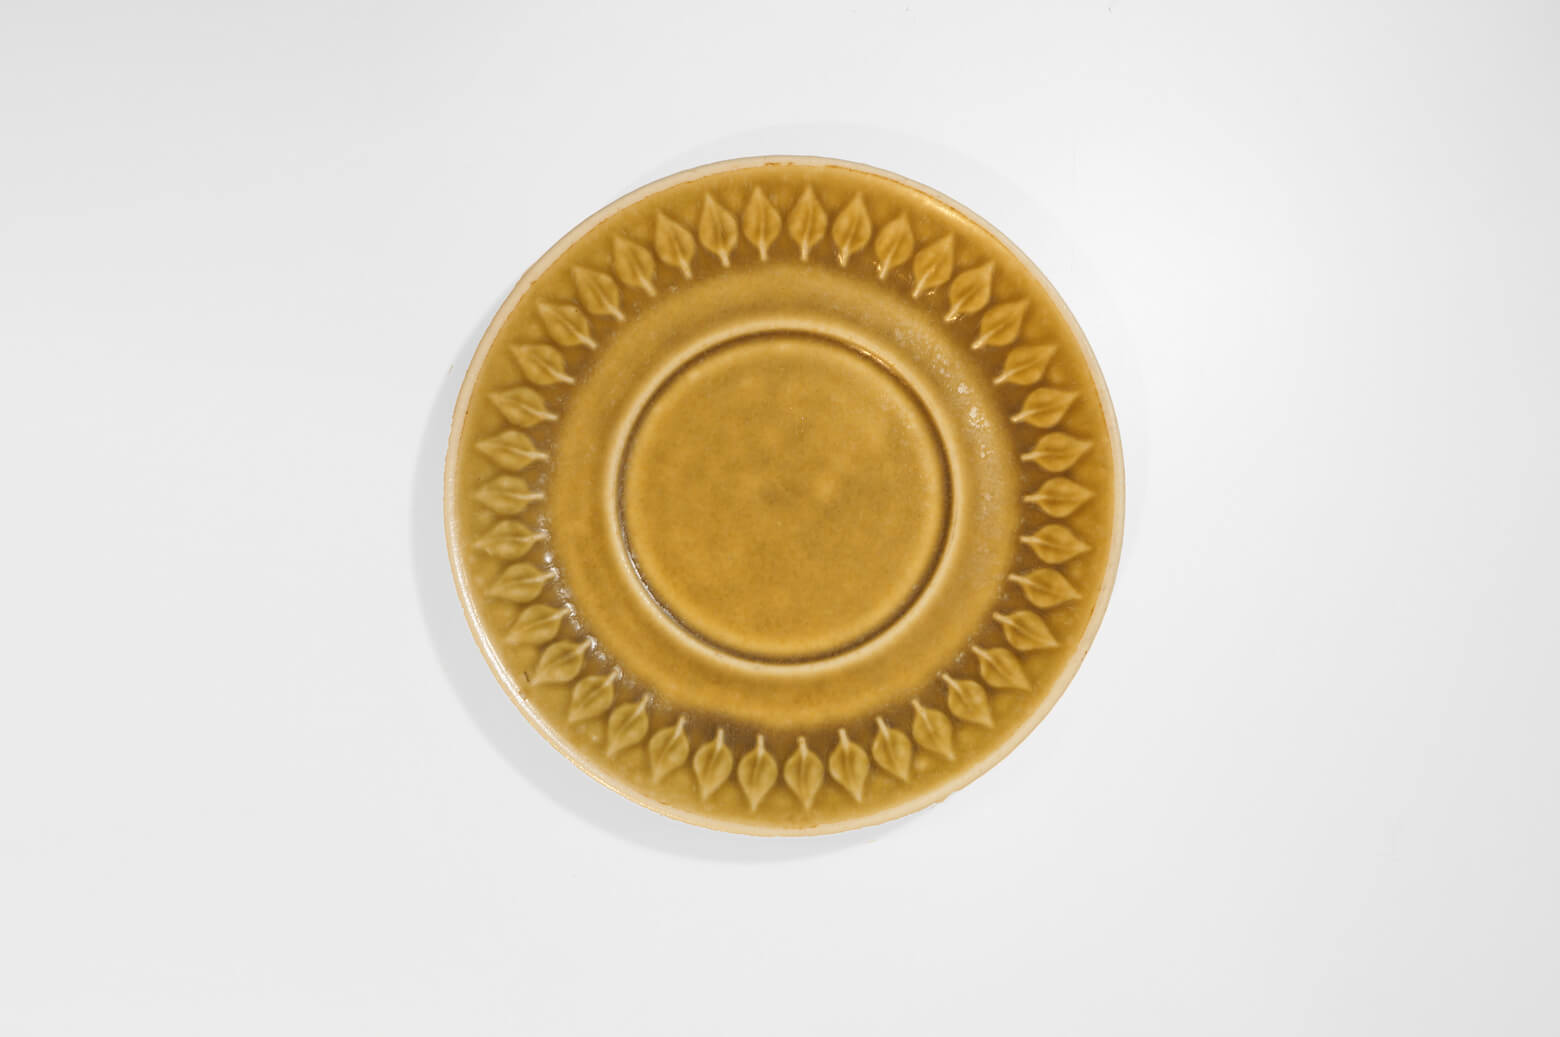 Kronjyden RELIEF series COFFEE CUP and SAUCER / クロニーデン レリーフ シリーズ コーヒーカップ アンド ソーサー 2